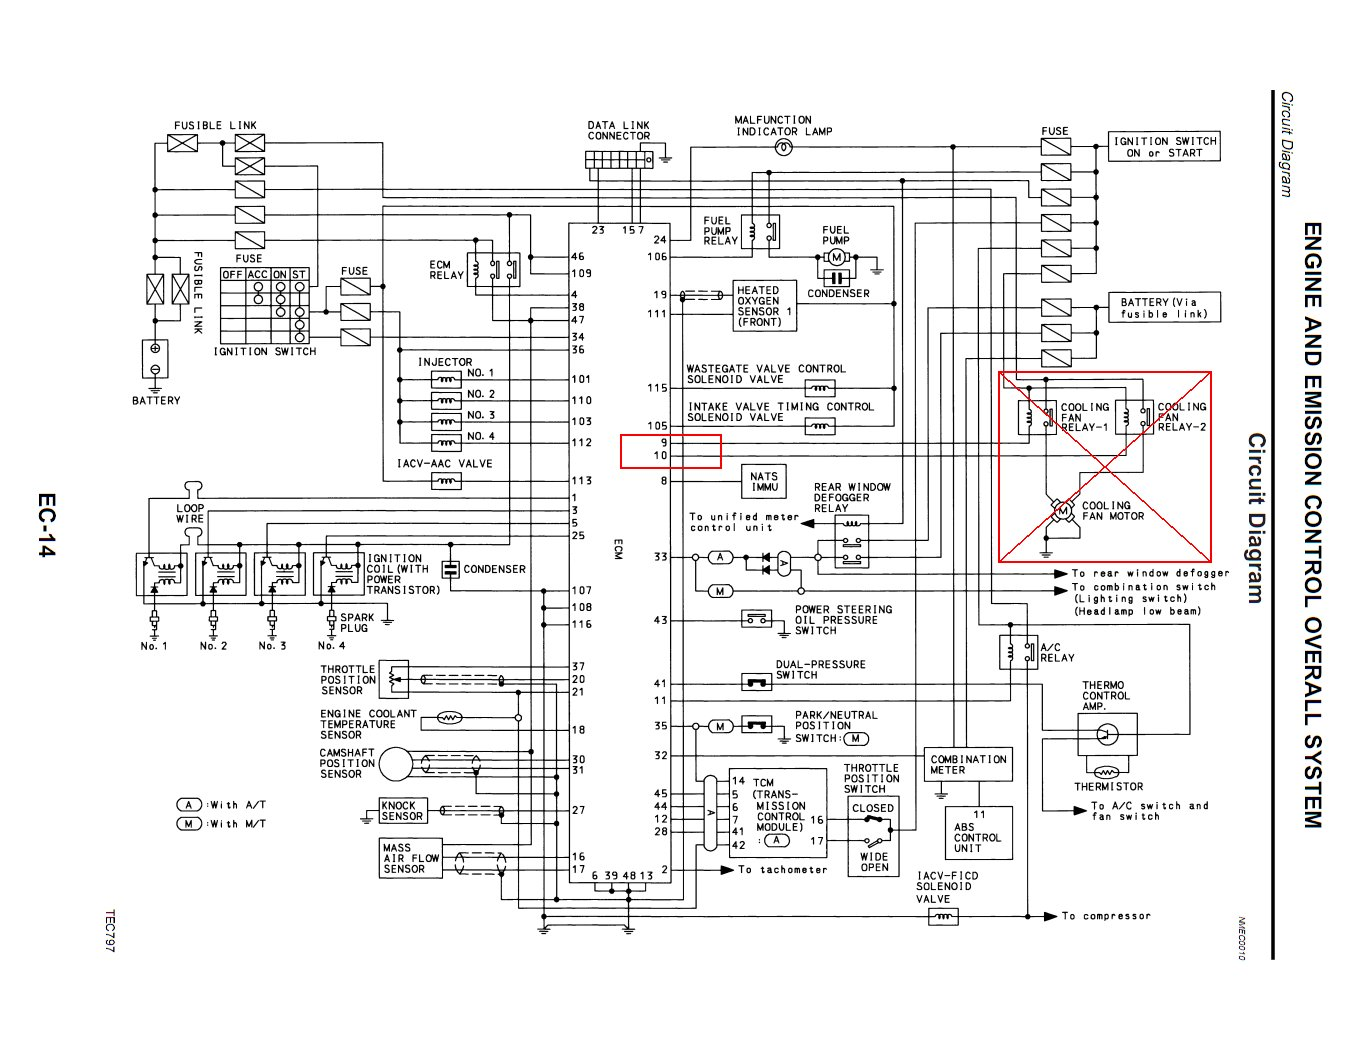 nissan s15 thermo fan setup omgpham rh omgpham com JDM SR20DET Wiring-Diagram SR20DET Wire Power Start